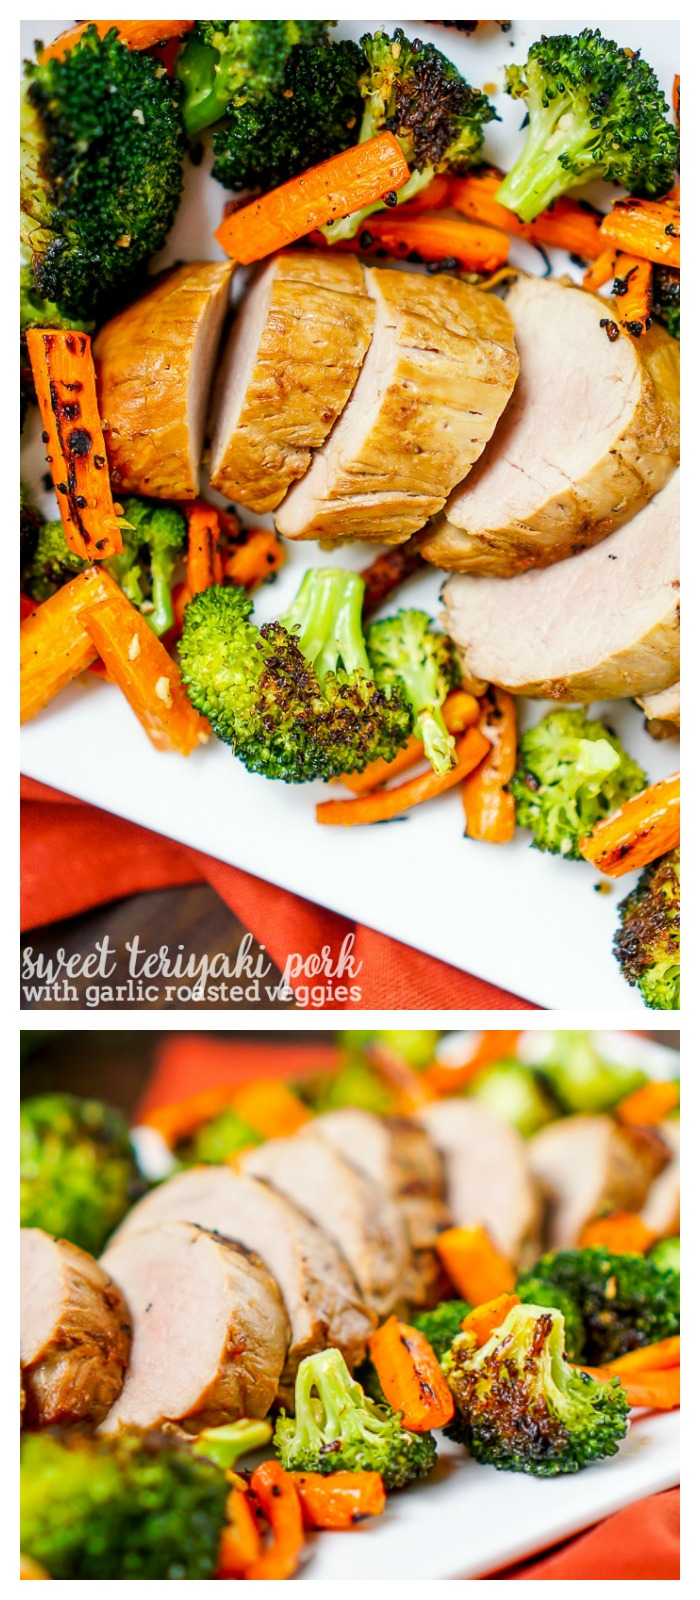 Sweet Teriyaki Pork with Garlic Oven Roasted Vegetables - Make this delicious home cooked dinner idea in 30 minutes, making it an easy weeknight meal! | The Love Nerds #ad #RealFlavorRealFast @SmithfieldBrand